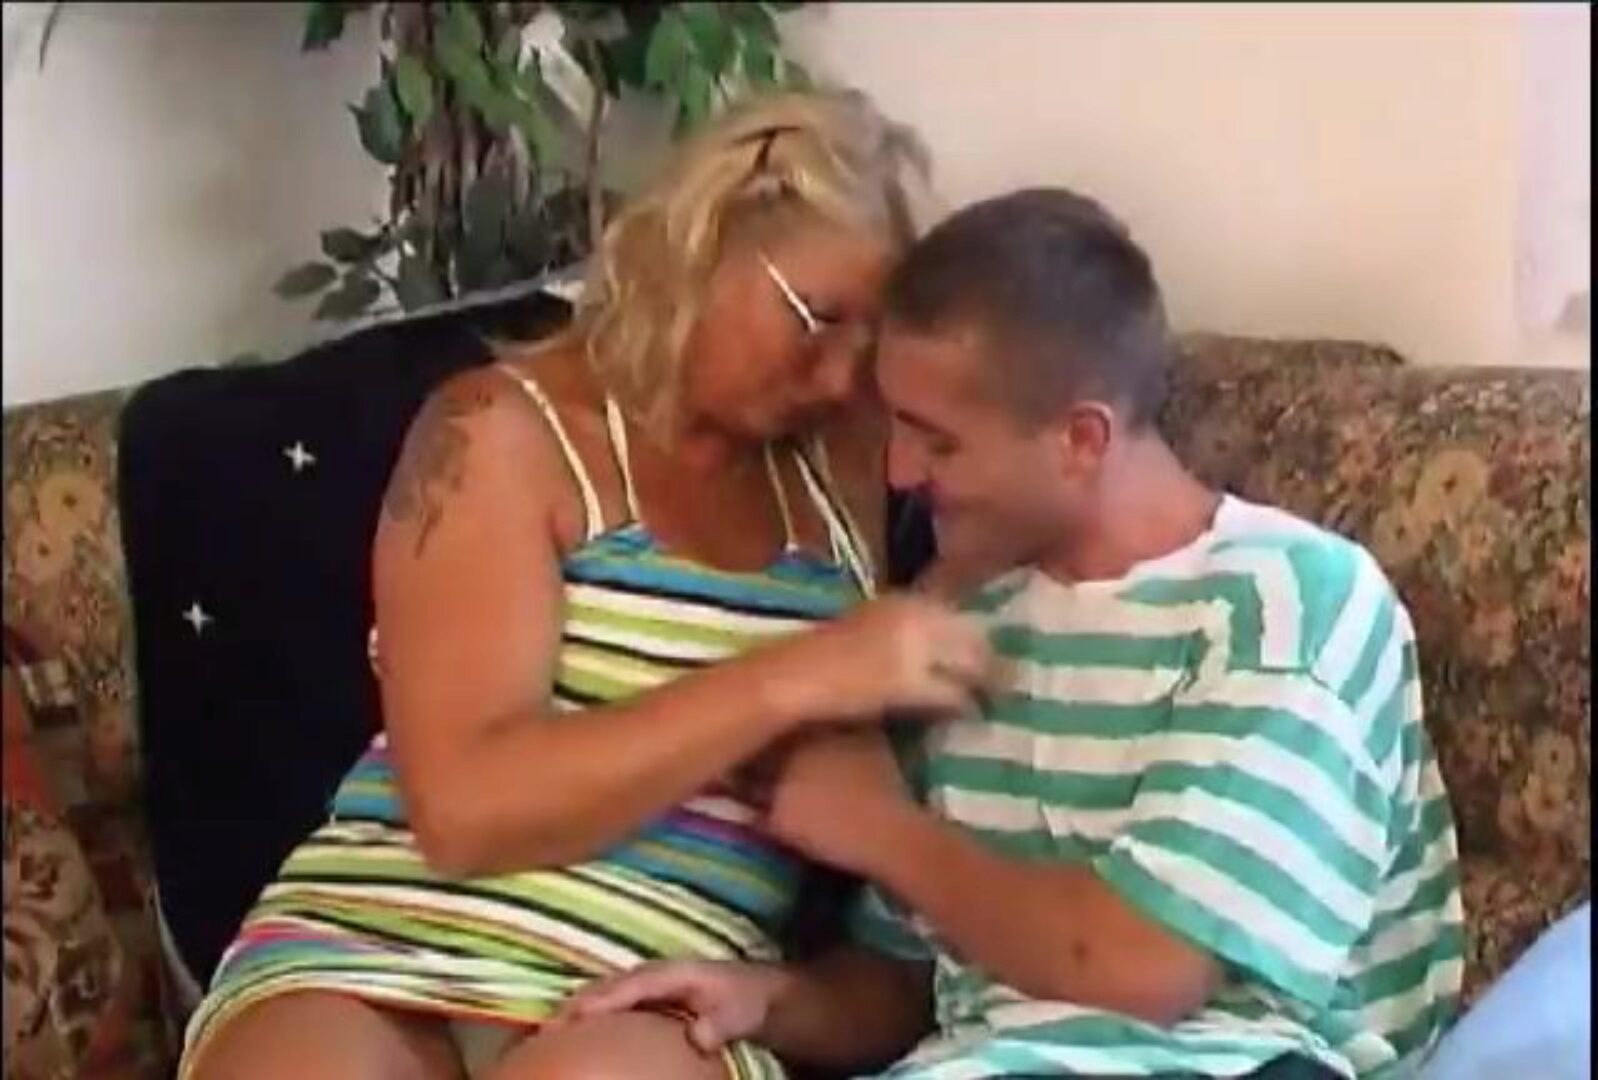 Blond Mature Makes Cute Stud Feel Good - Free Porn Videos - YouPorn Watch blond aged makes lovely hunk sense worthwhile online on YouPorn.com. YouPorn is the largest MILF porno video site with the best selection of free-for-all high quality episodes Enjoy our HD porno vids on any instrument of your choosing!